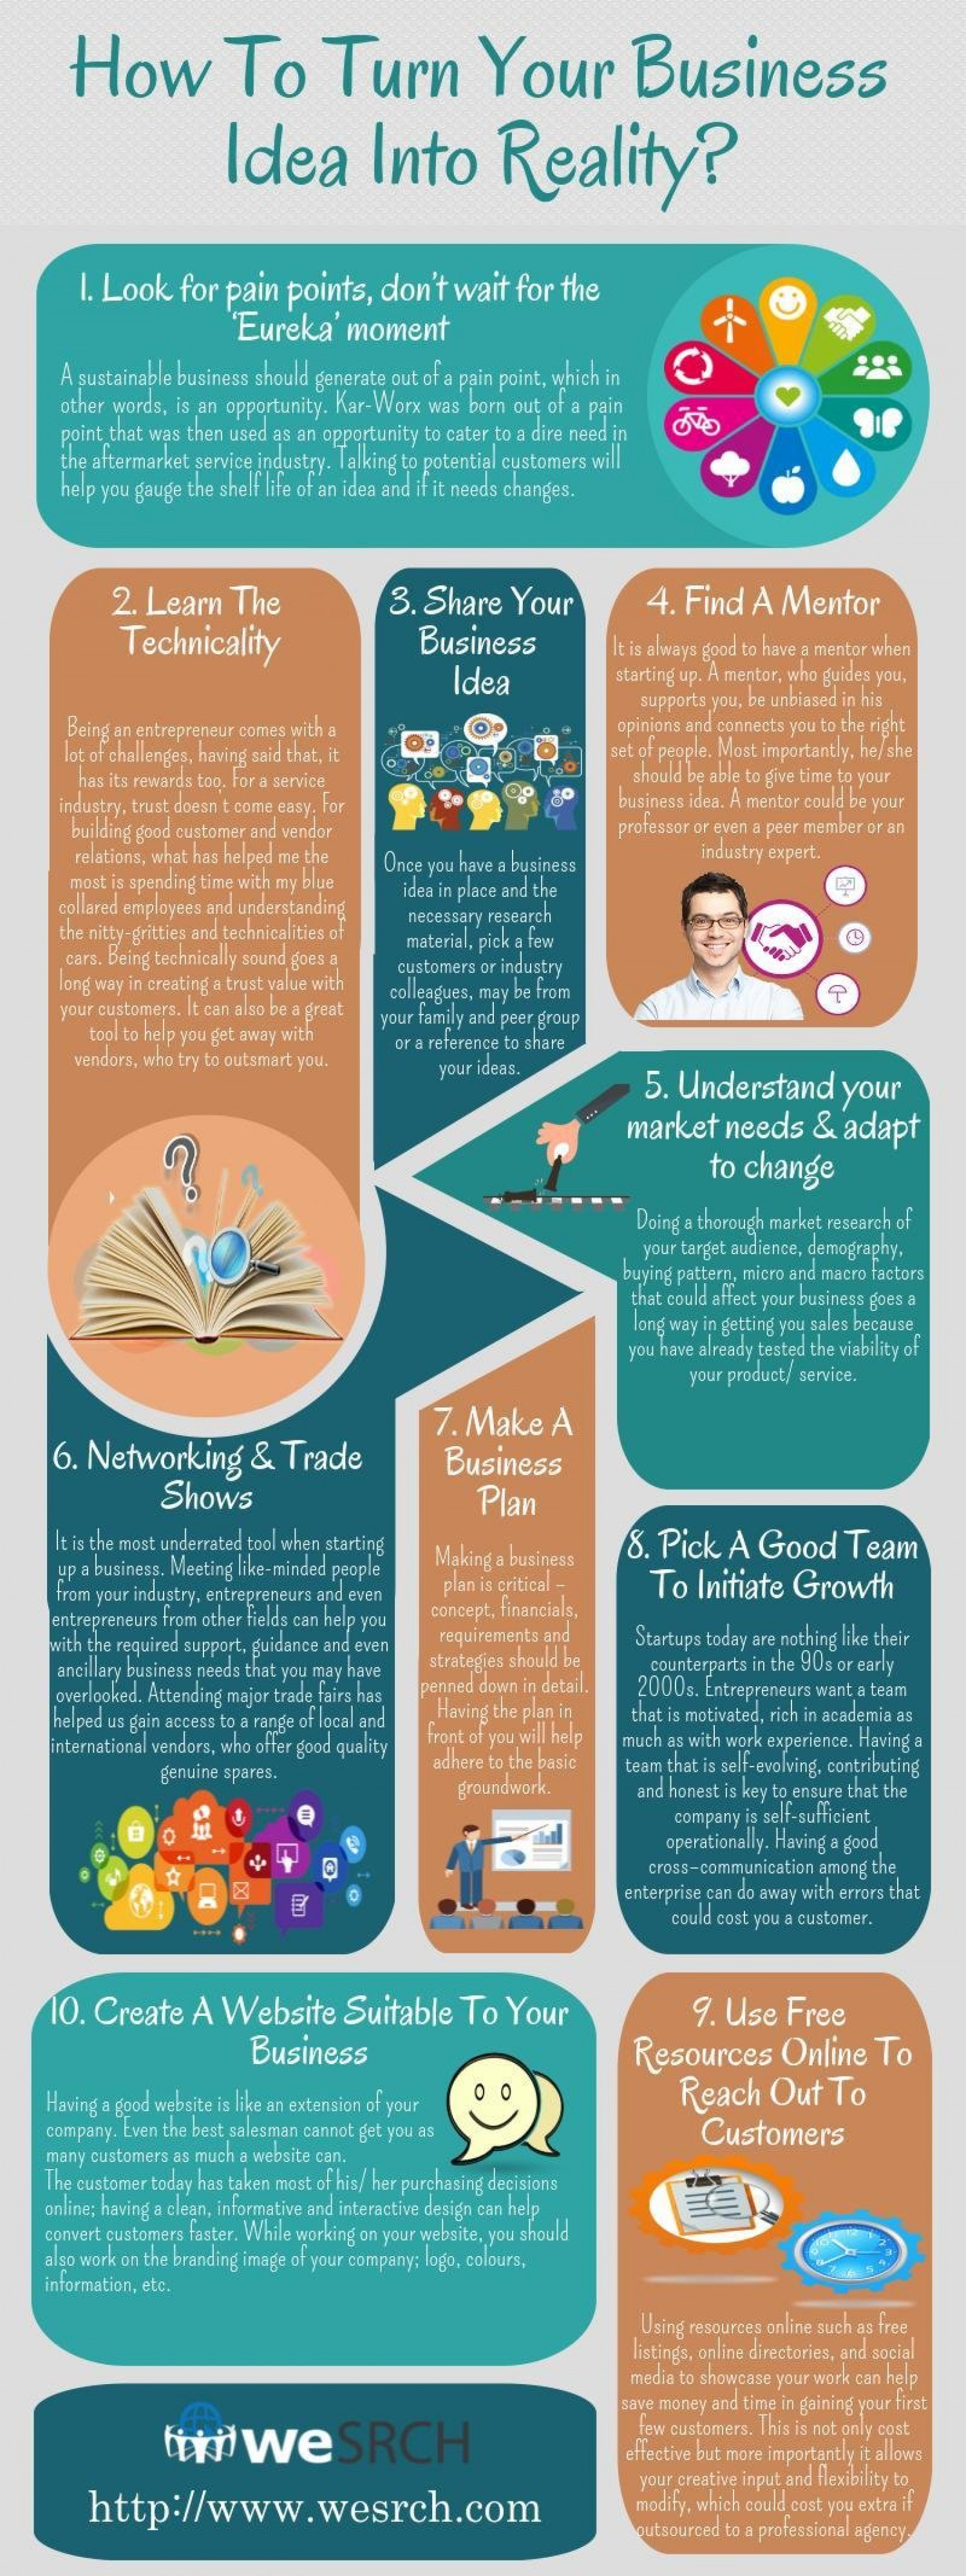 how to make your business idea a reality